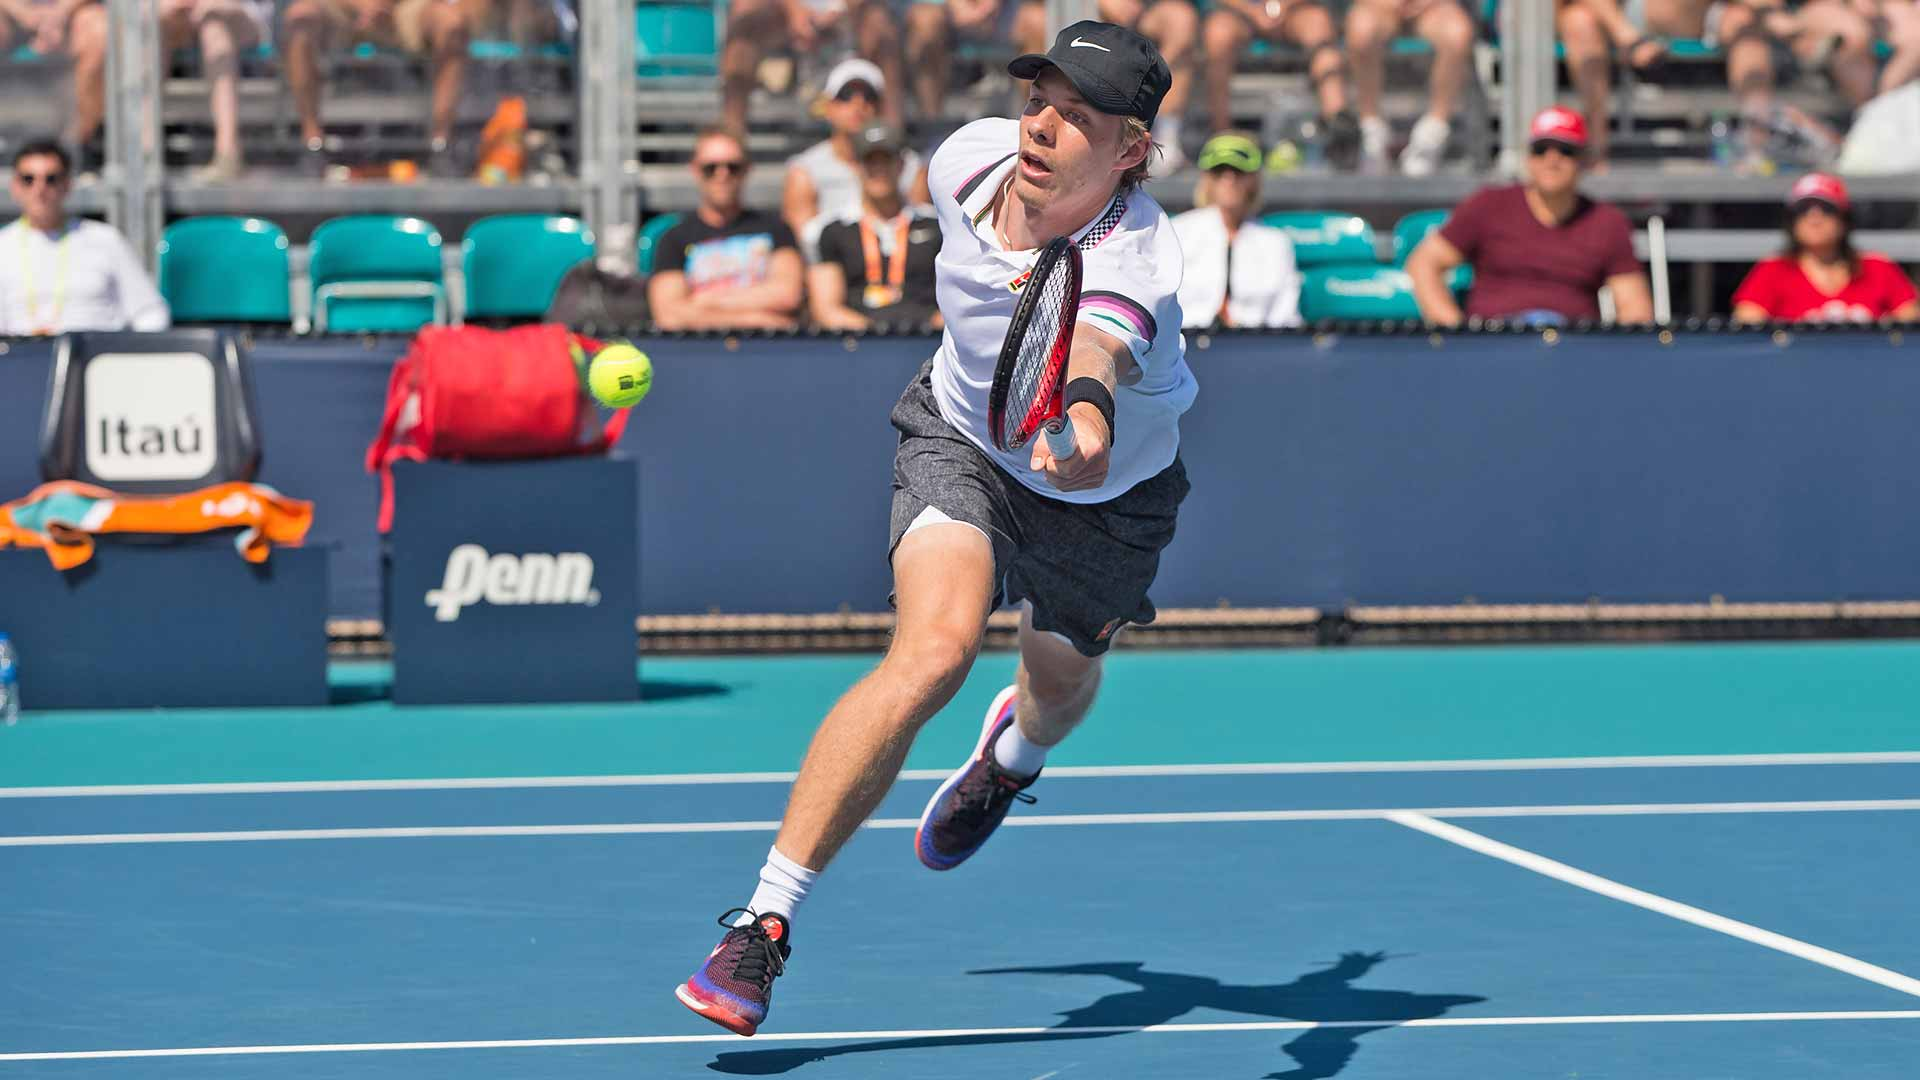 Denis Shapovalov hits a volley during his third-round match in Miami